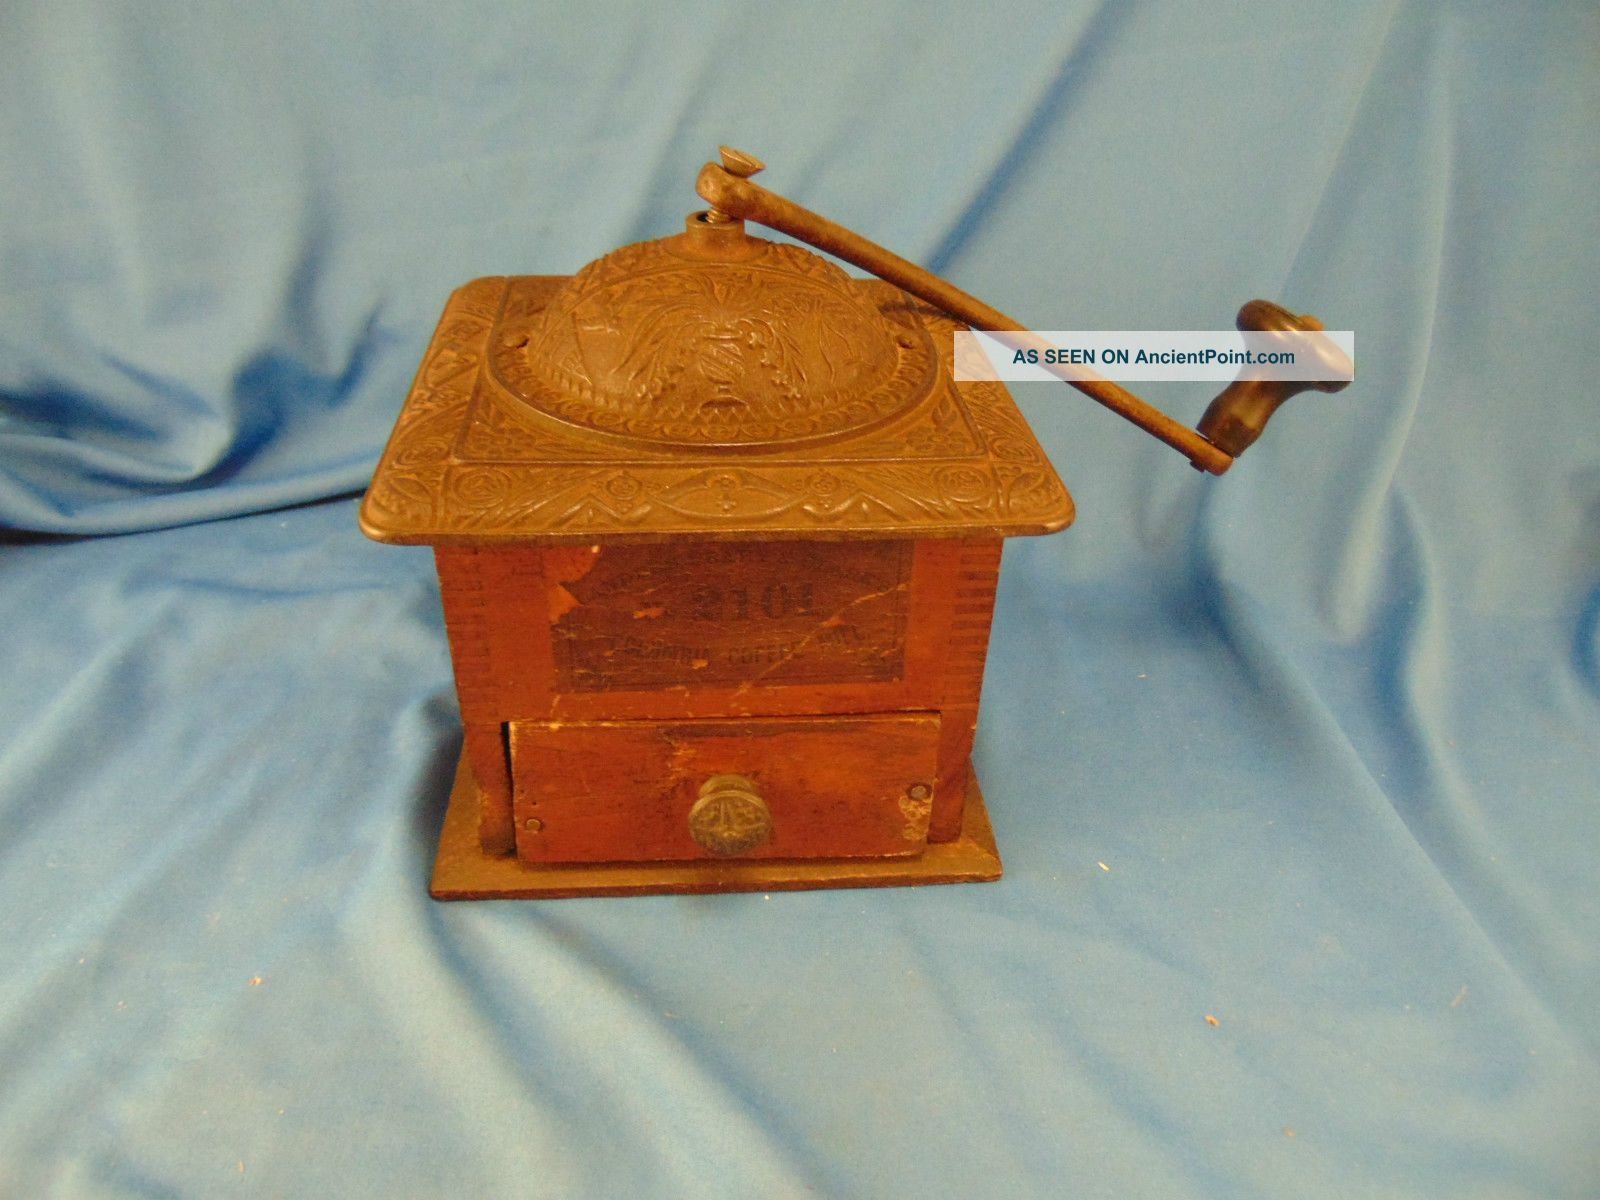 Antique Coffee Beans Grinder Wood And Copper Parts Ornate Top Birds Embossed Art Other Antique Home & Hearth photo